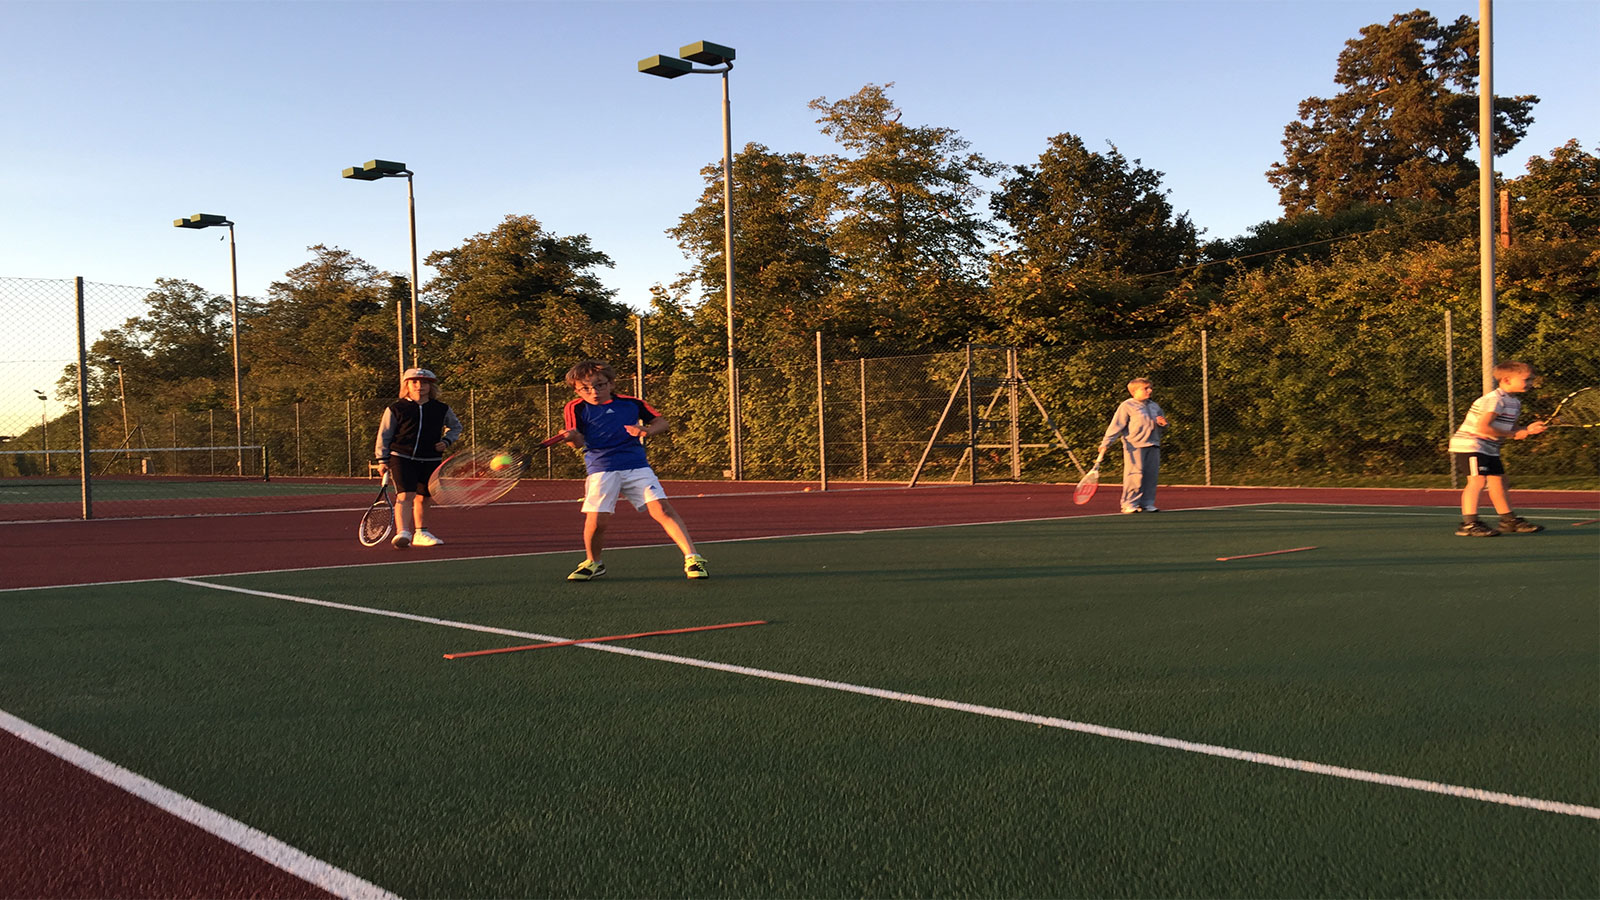 tennis coaching in essex earls colne